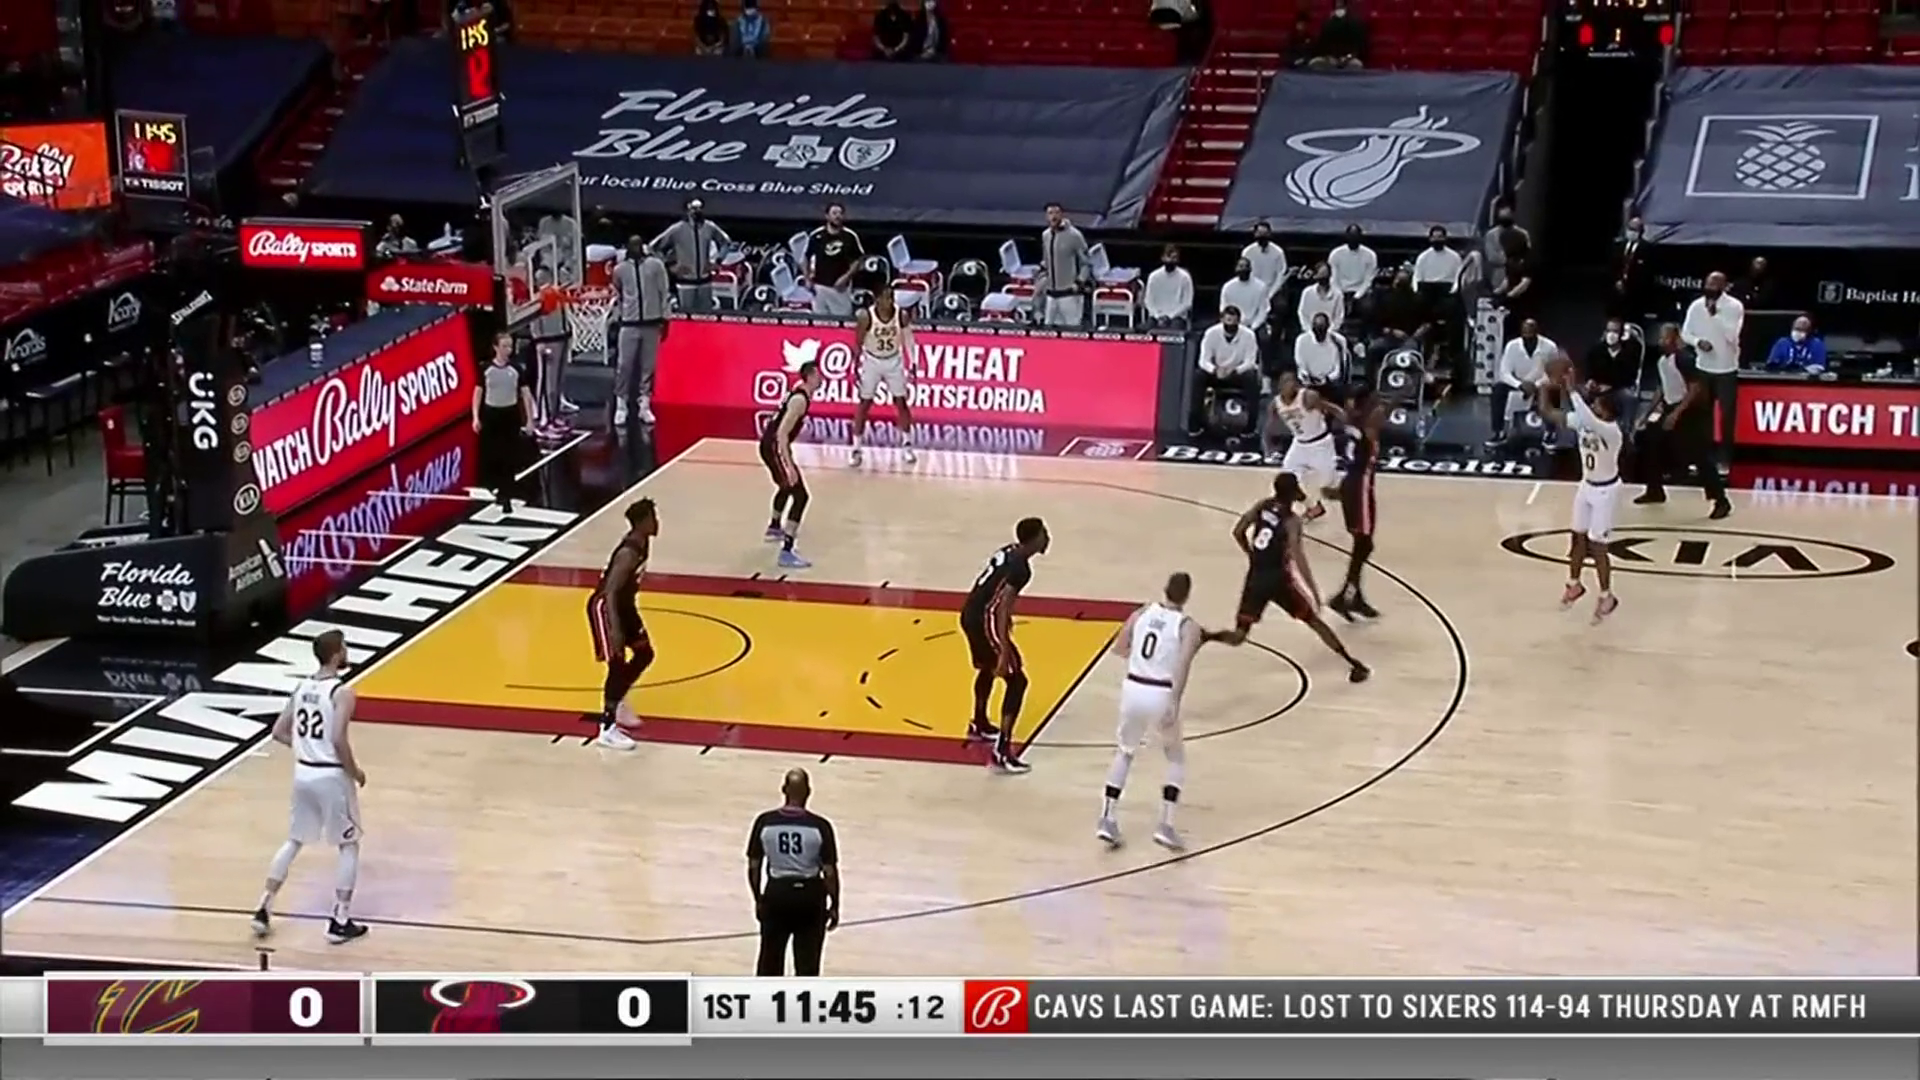 Garland's Three Gets Cavs on the Board